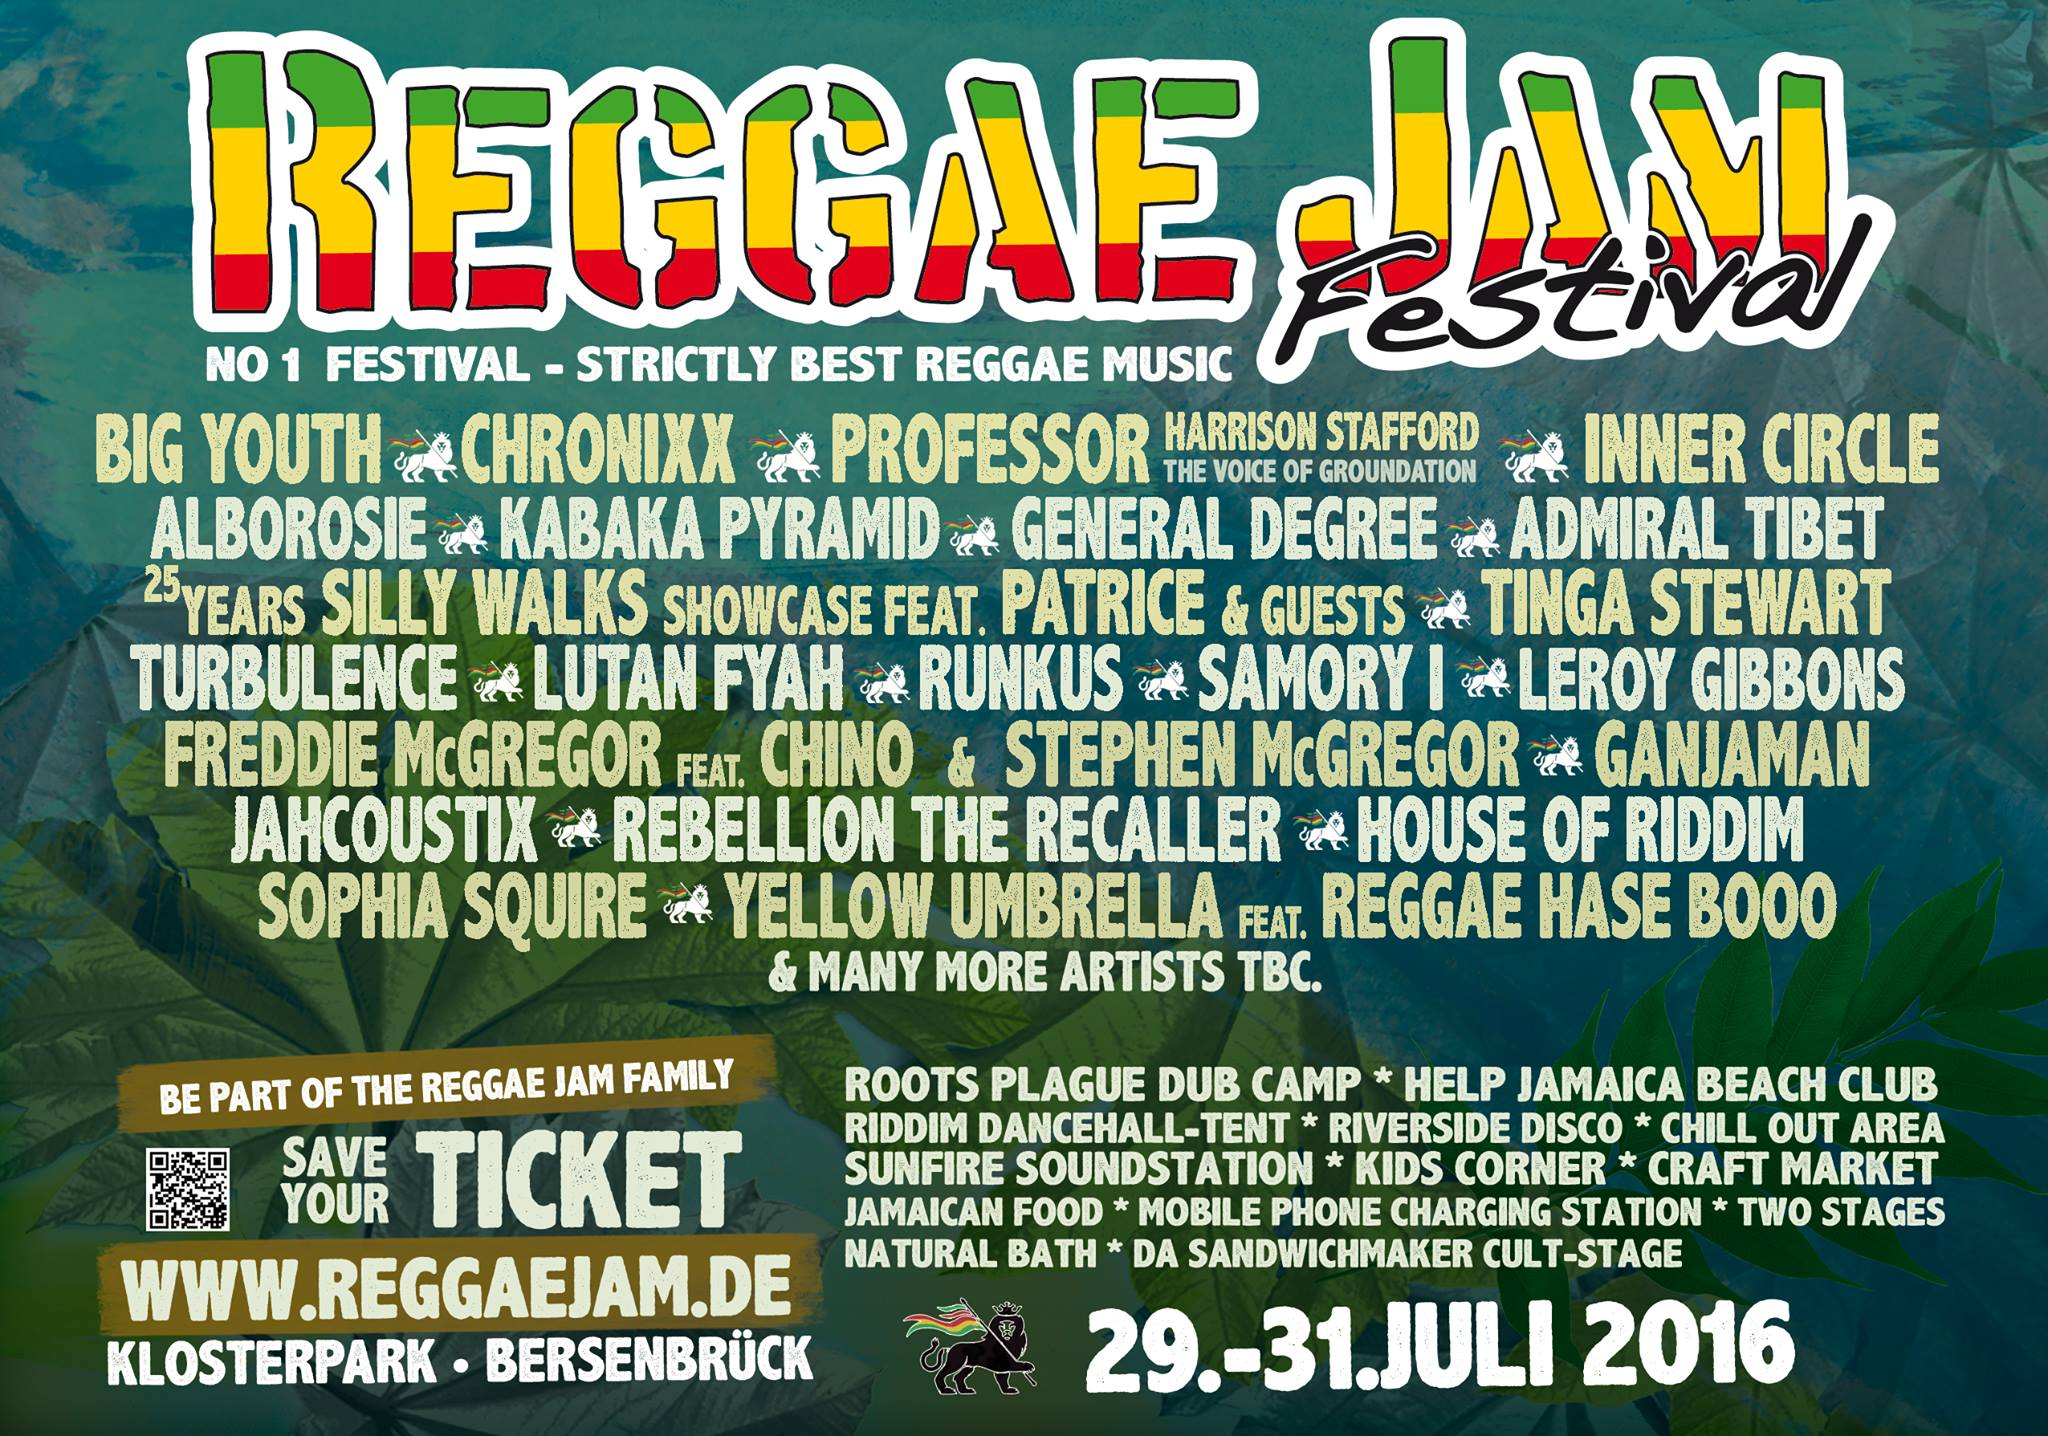 Reggae Jam Festival 2016 - Dreadbag.de is here!